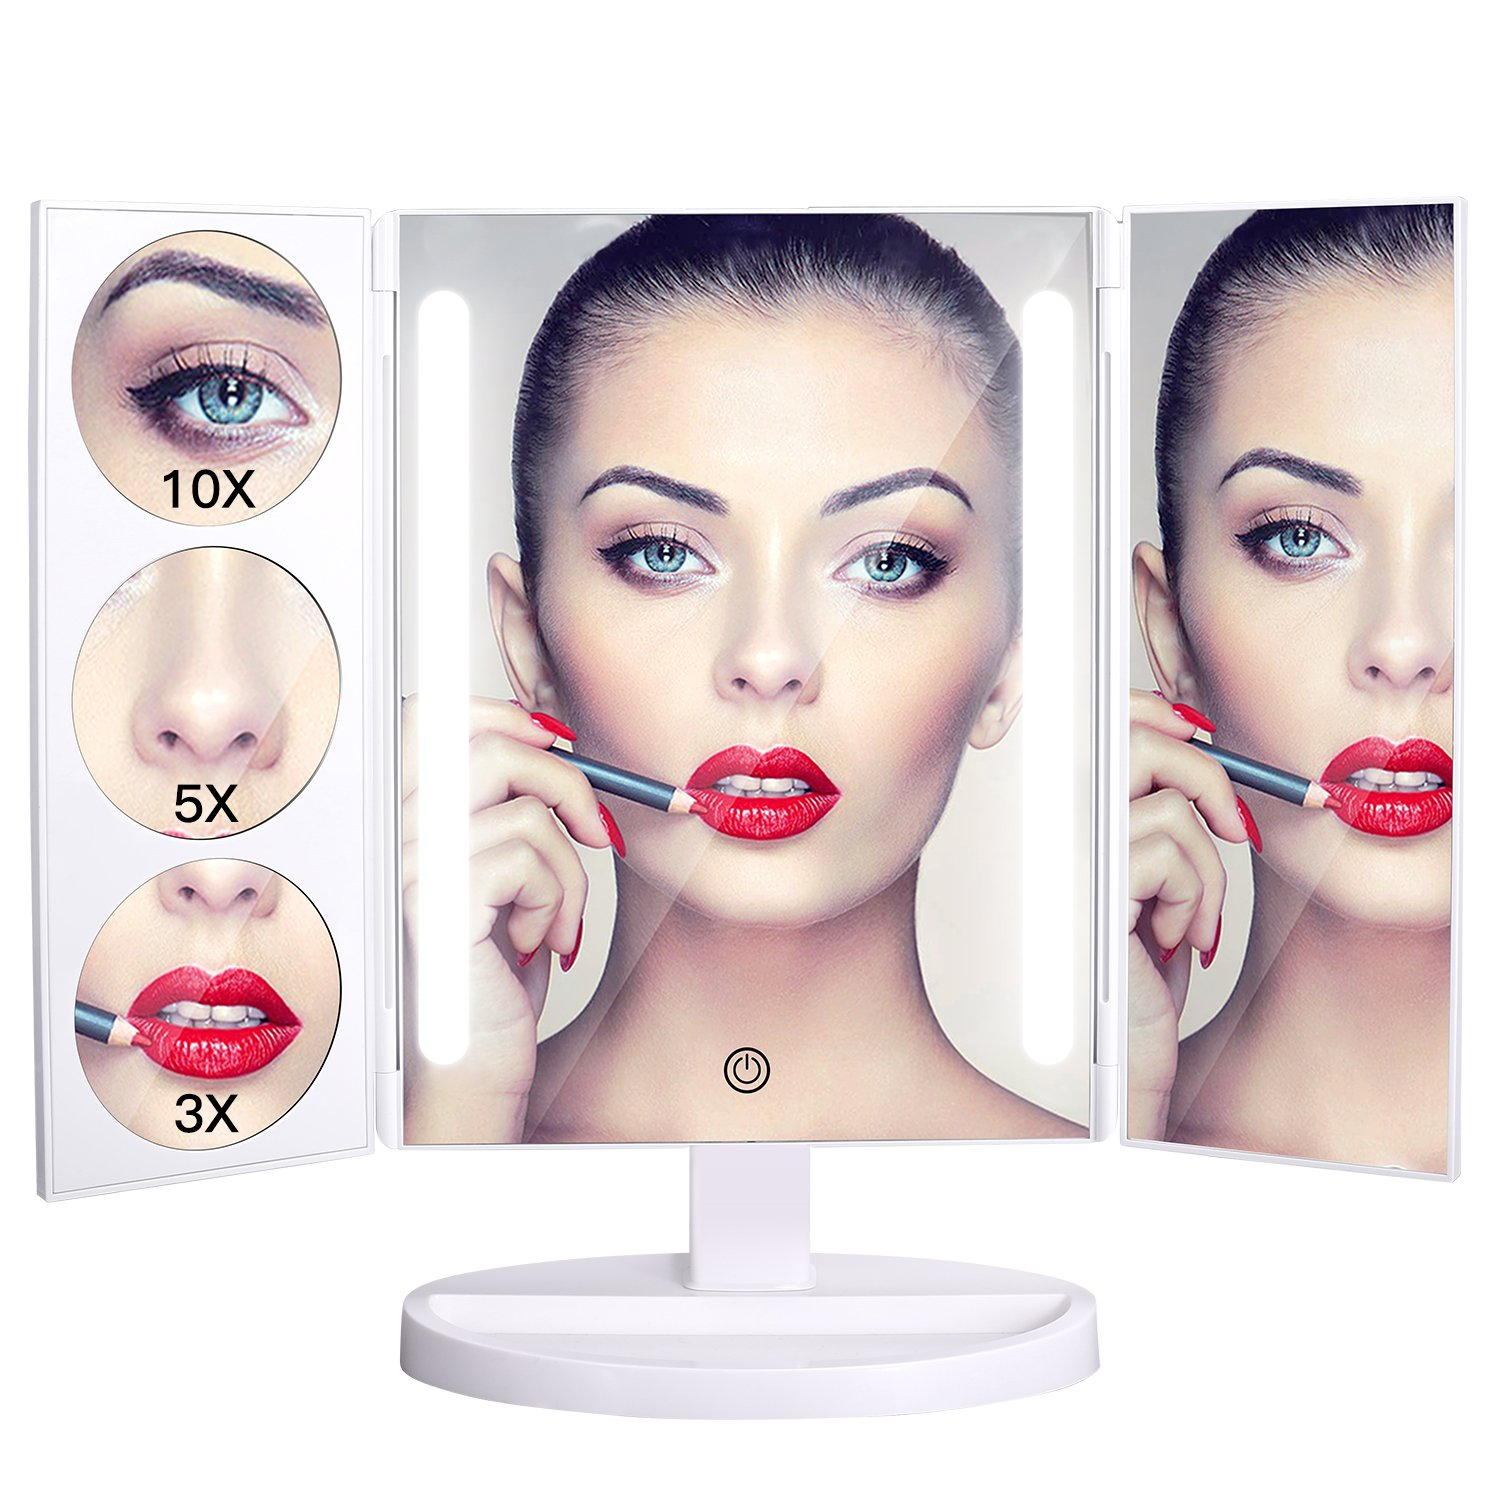 BESTOPE Makeup Mirror Oversize 18.8inch Lighted Vanity Mirror with 10X/5X/3X Magnification, 26 LED Light Trifold Cosmetic Mirror with 360° Rotation and Touch Screen by BESTOPE (Image #8)